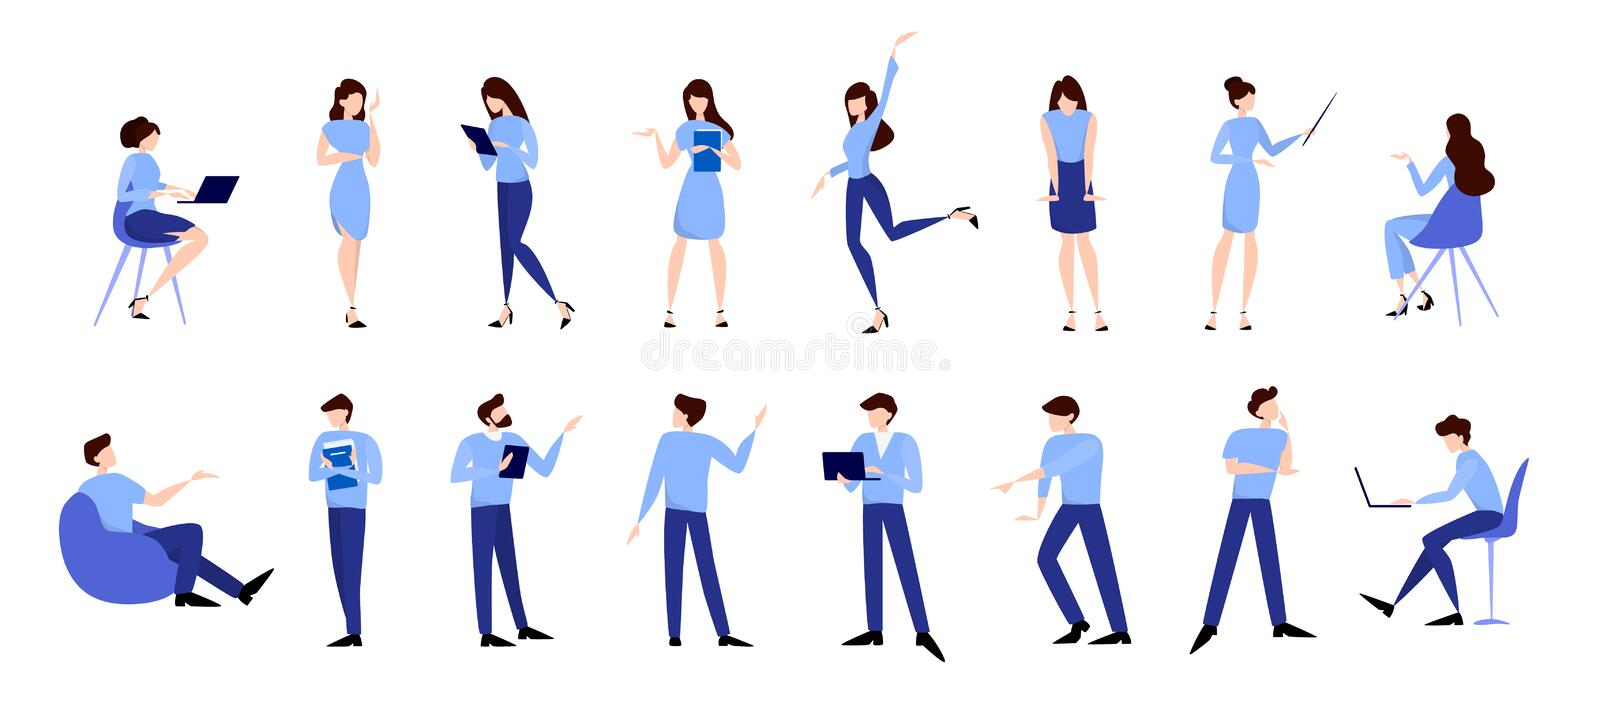 Business pepople set. Man and woman in suit in various poses. Office person, professional worker. Isolated flat vector illustration stock illustration